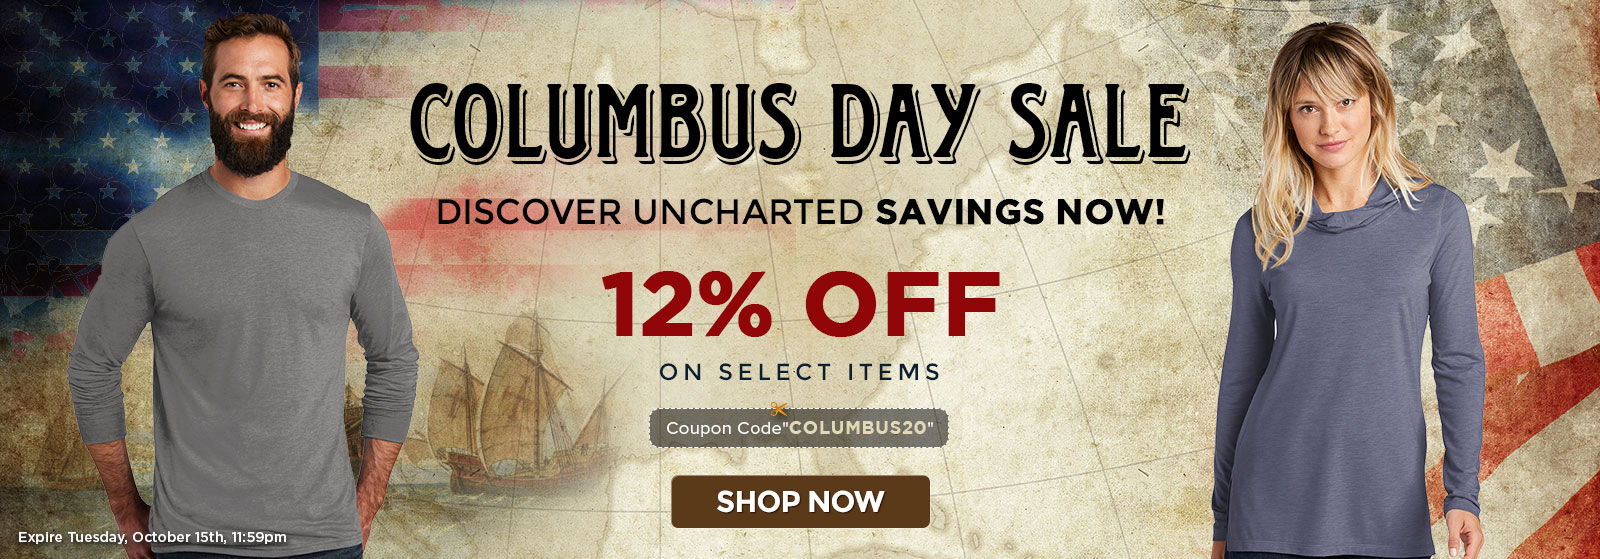 Columbus-Day-Sale.jpg